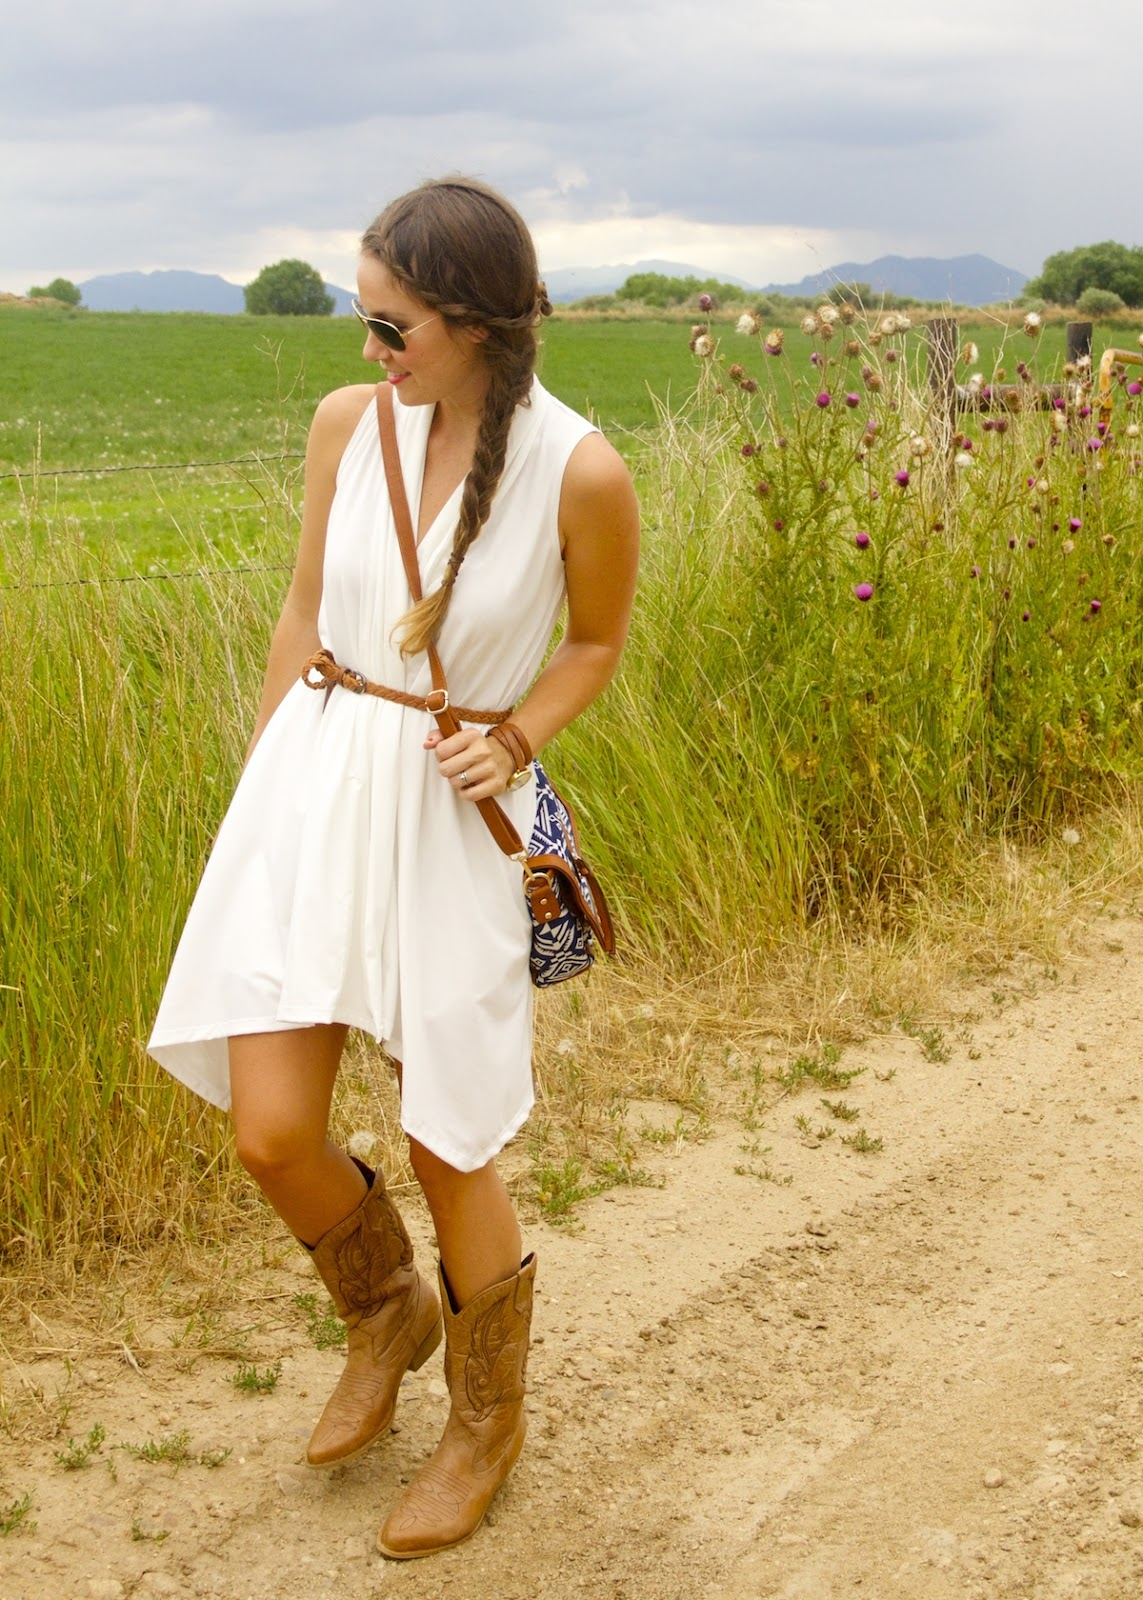 Outfits Summer with cowboy boots advise to wear for autumn in 2019